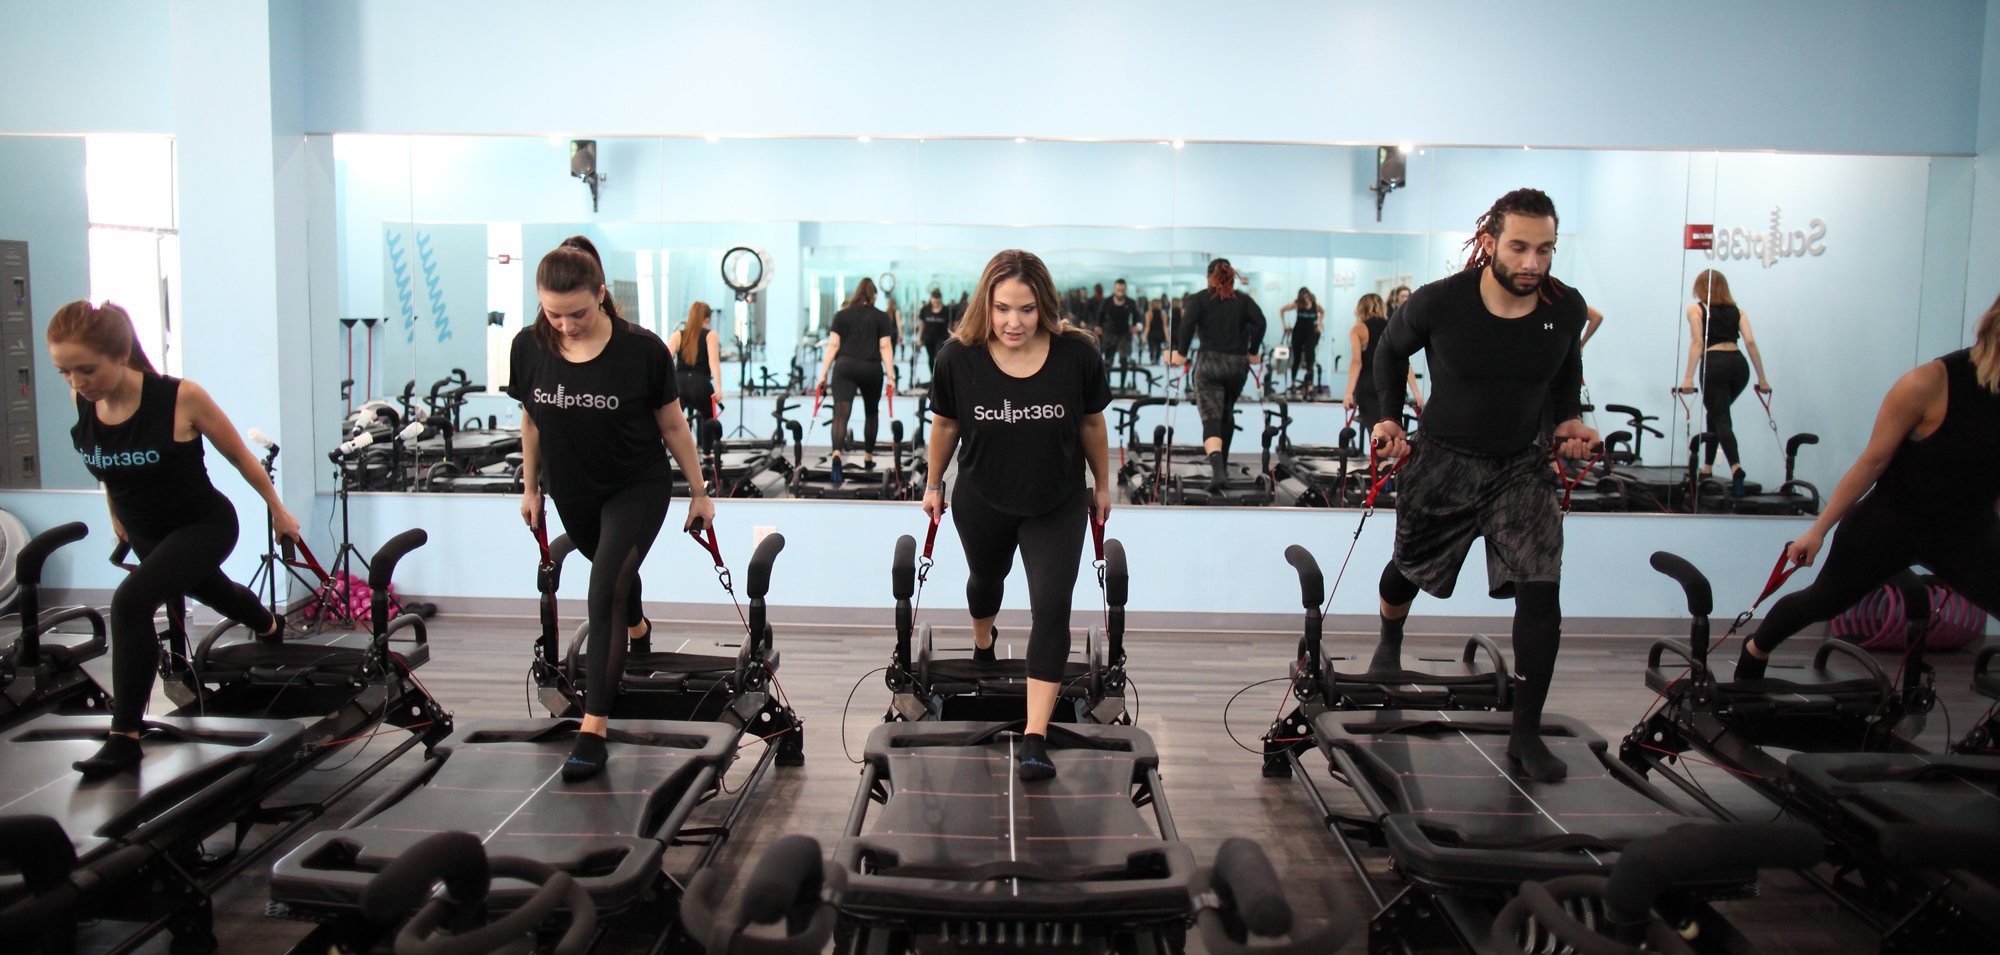 workouts in a Sculpt360 gym